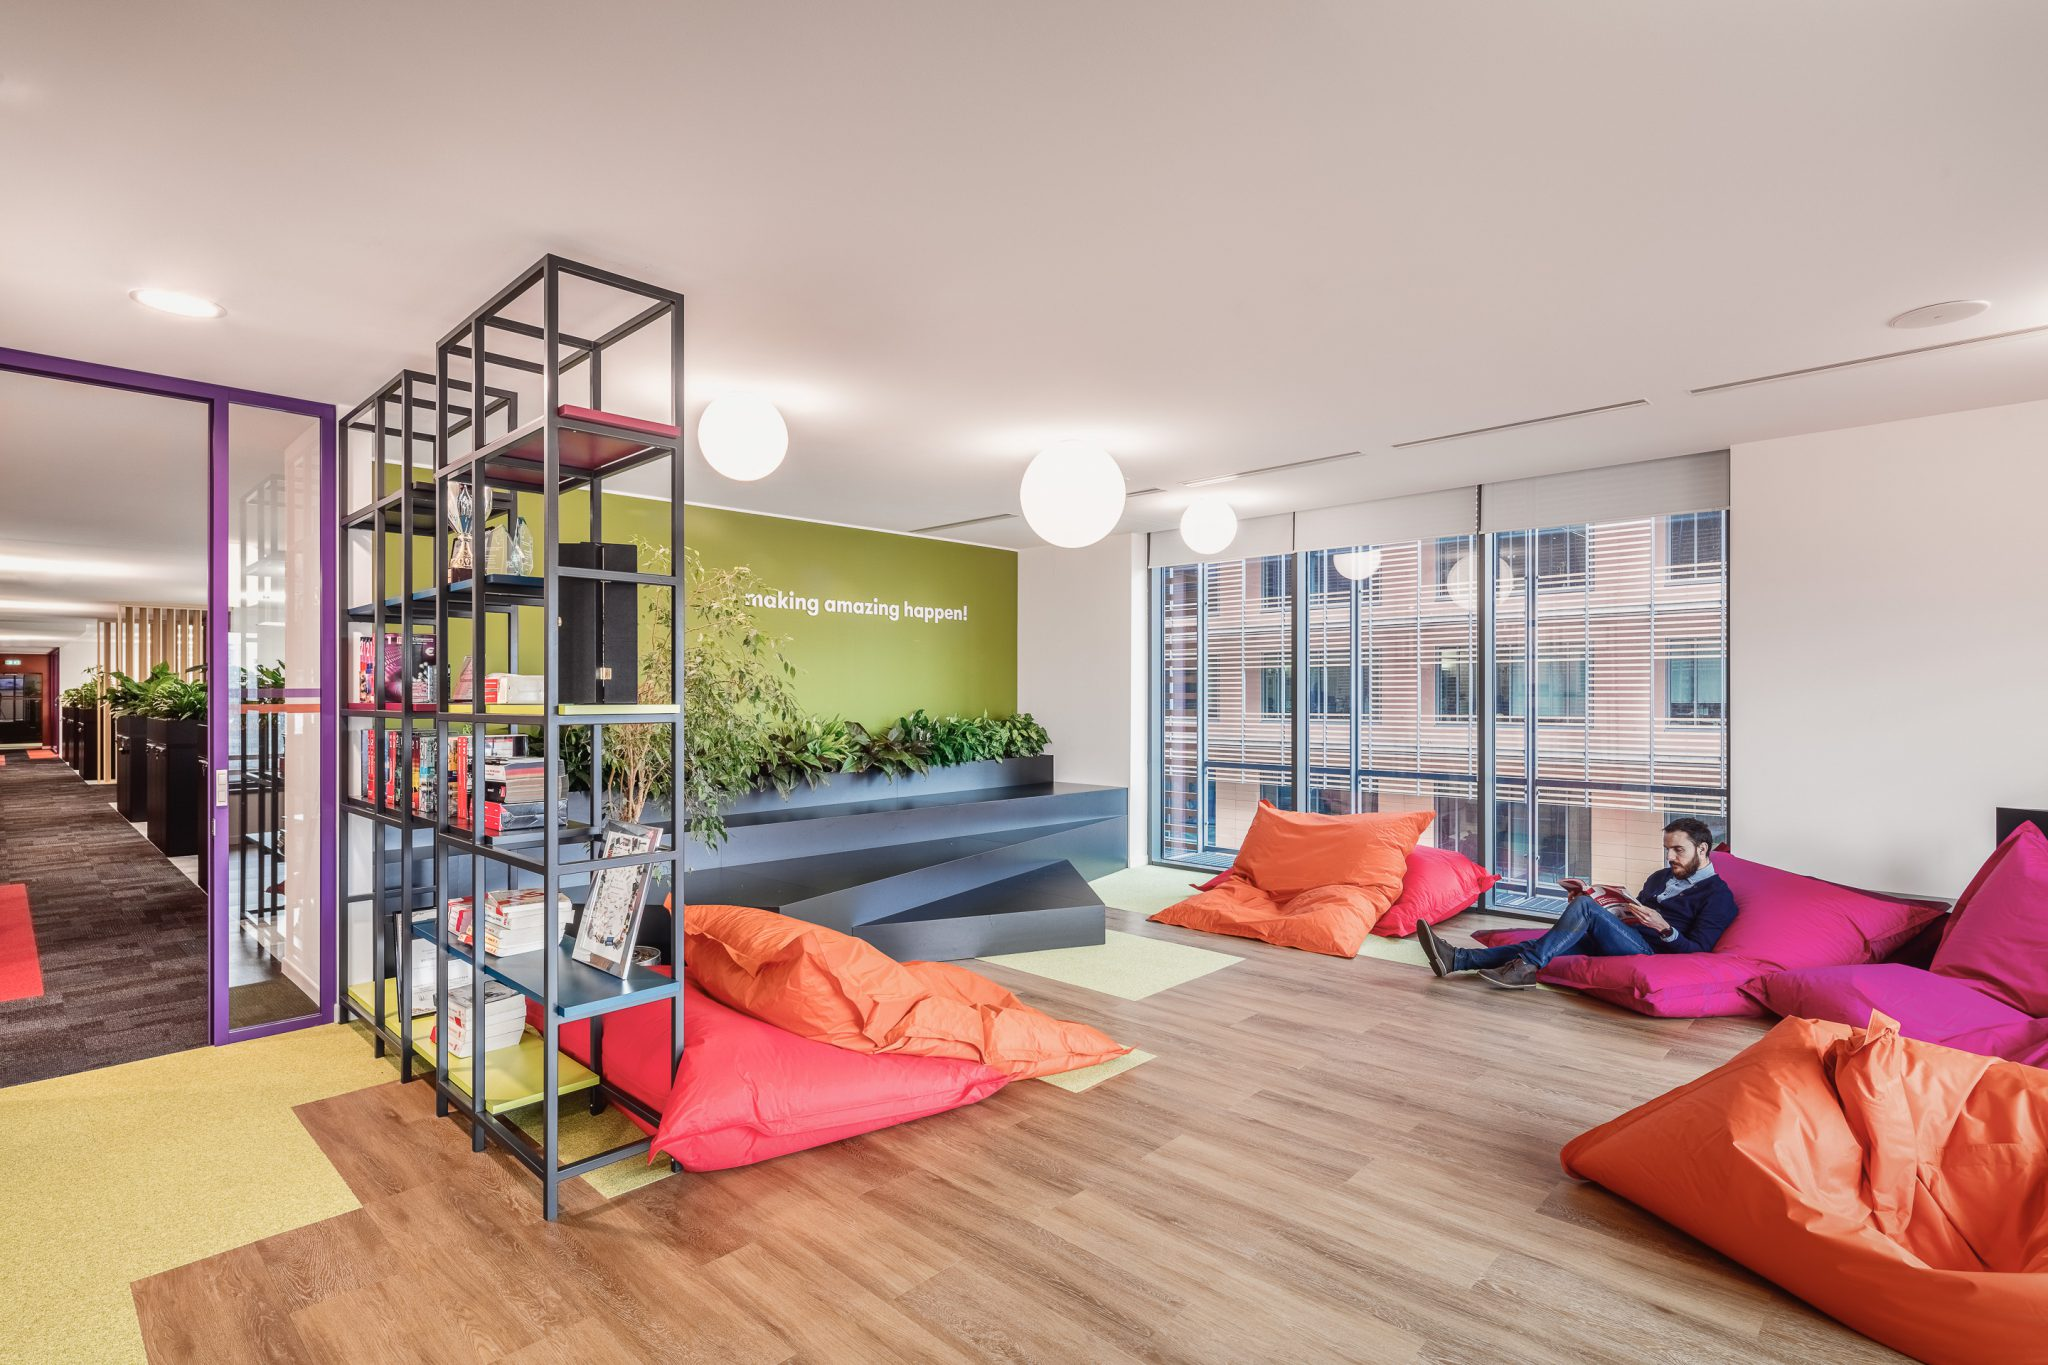 Relaxation space at the RS Components office in Milan, Italy